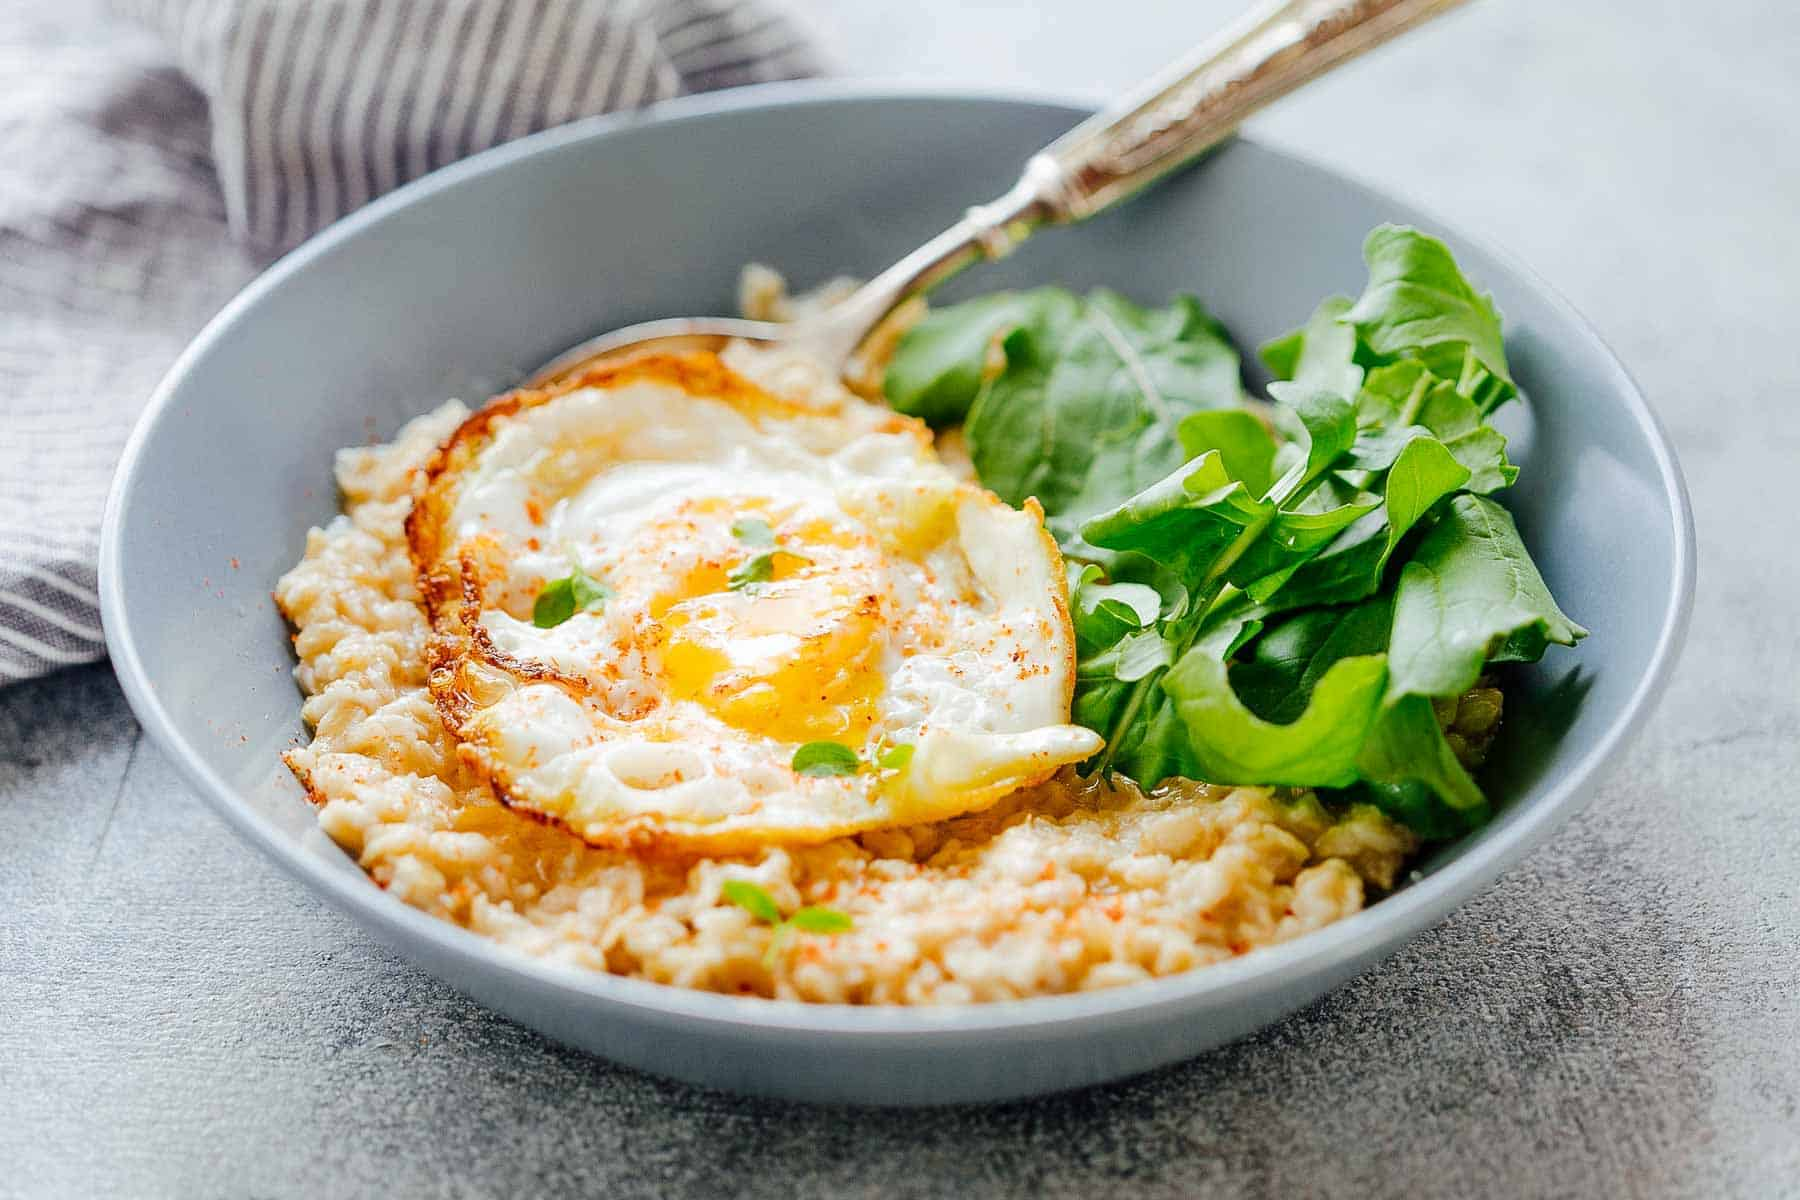 hese savory garlic oats with a masala fried egg are healthy, delicious and a great way to switch up breakfast when you are bored of regular sweet oatmeal. The runny yolk adds a gorgeous creaminess and the crispy edges add crunch. Make it a breakfast salad bowl with mixed greens or toss it up with some spices for a really satisfying breakfast.